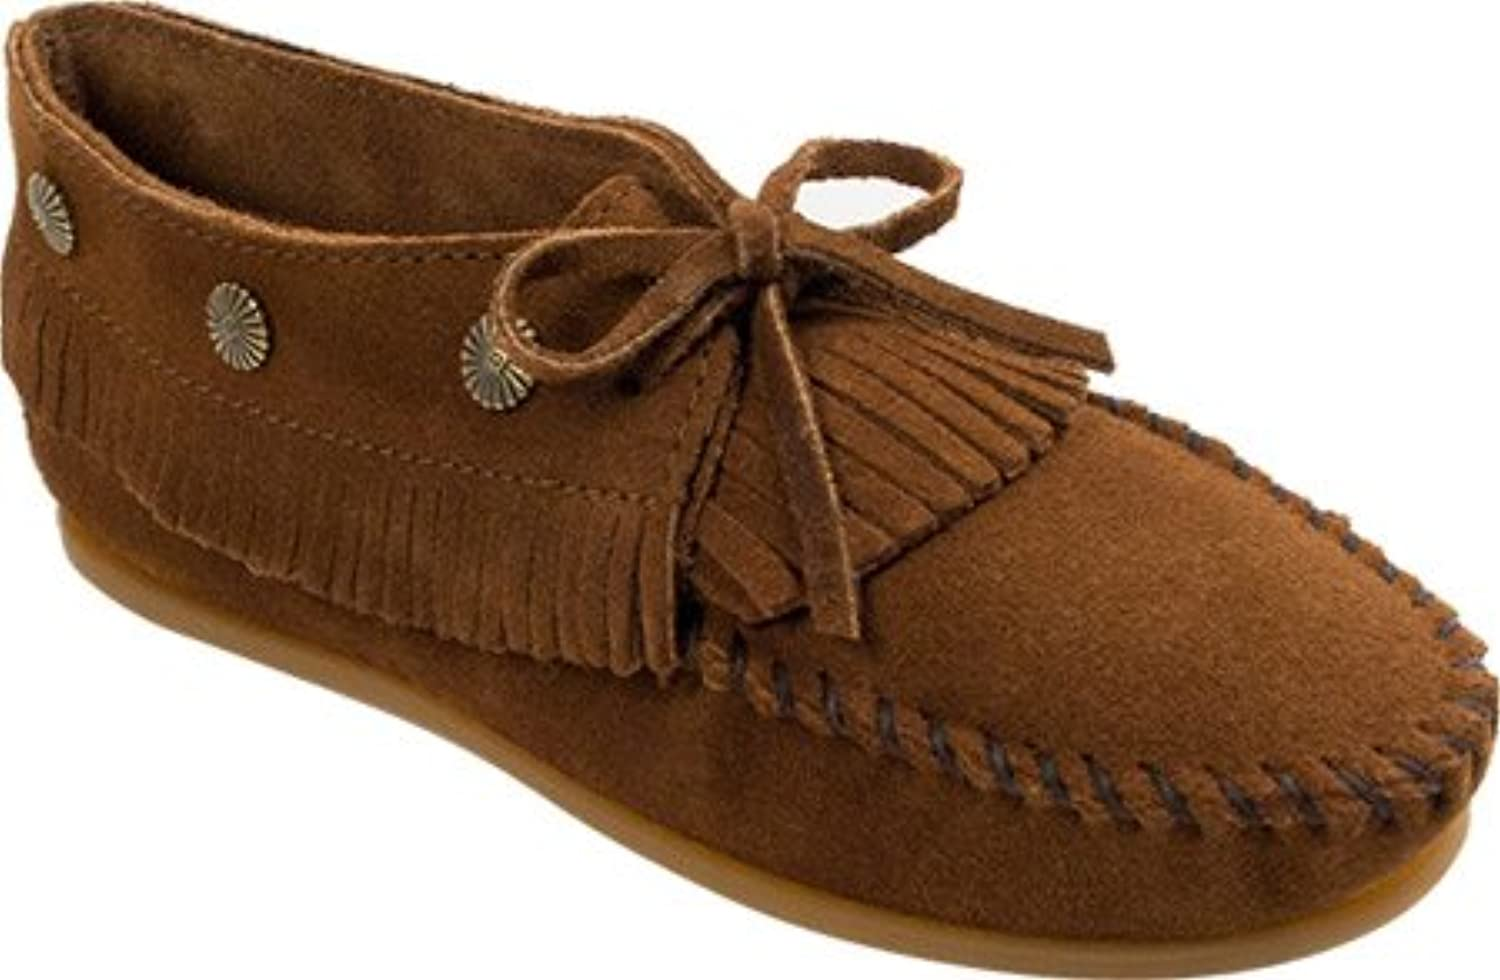 Minnetonka shoes Womens Fringed Lightweight Moccasin 8 Brown 533